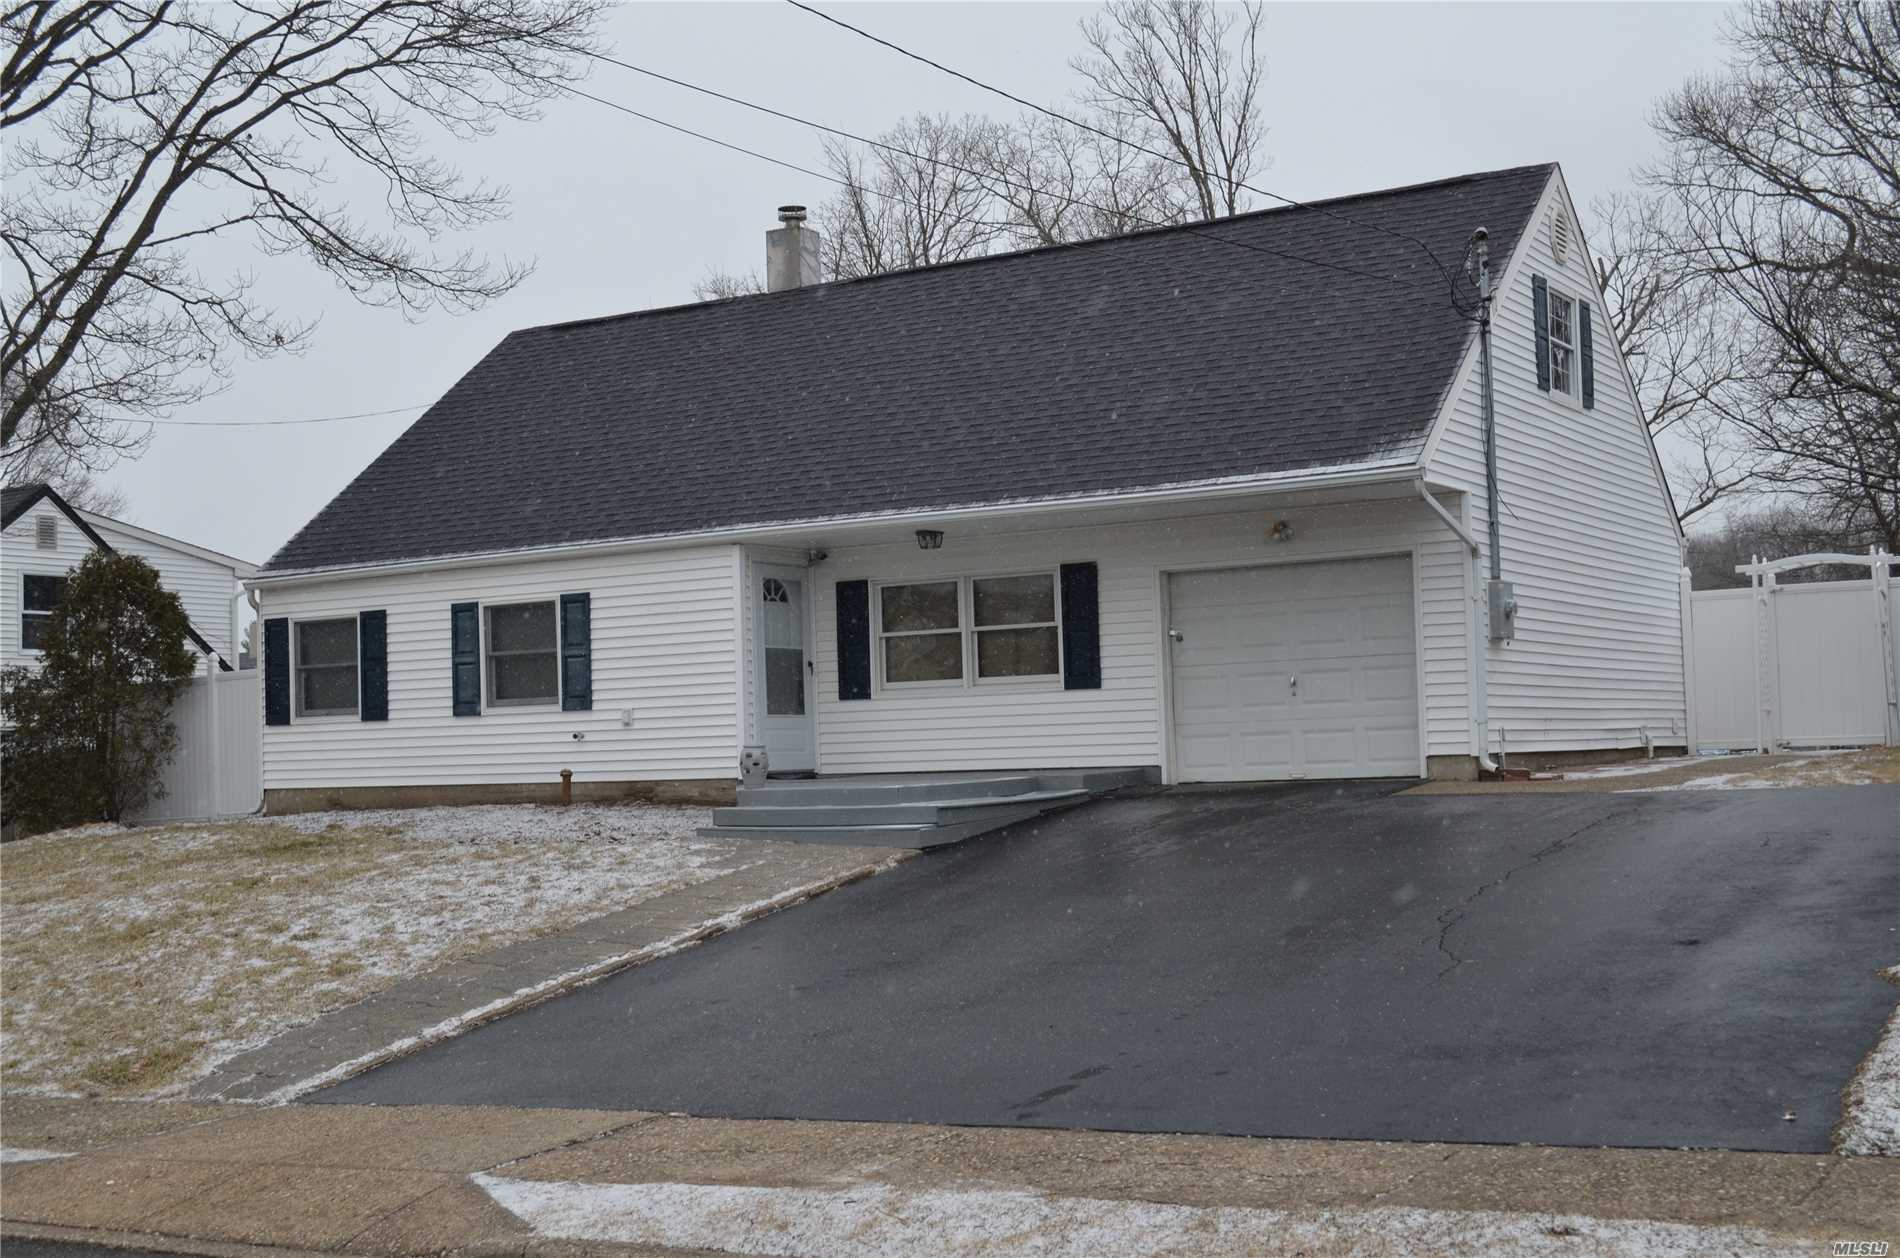 Newly Renovated Home With Brand New Kitchen With Granite And Stainless Steel Appliances, 2 New Baths, Bonus Room, New Laminate Floors And Carpet, New Heating System, Mostly New Sheetrock, Recessed Lights And Updated Electric (200 Amp), In-Ground Pool (Liner Is Slipping, Seller Will Give $3, 800 Credit For Repair).